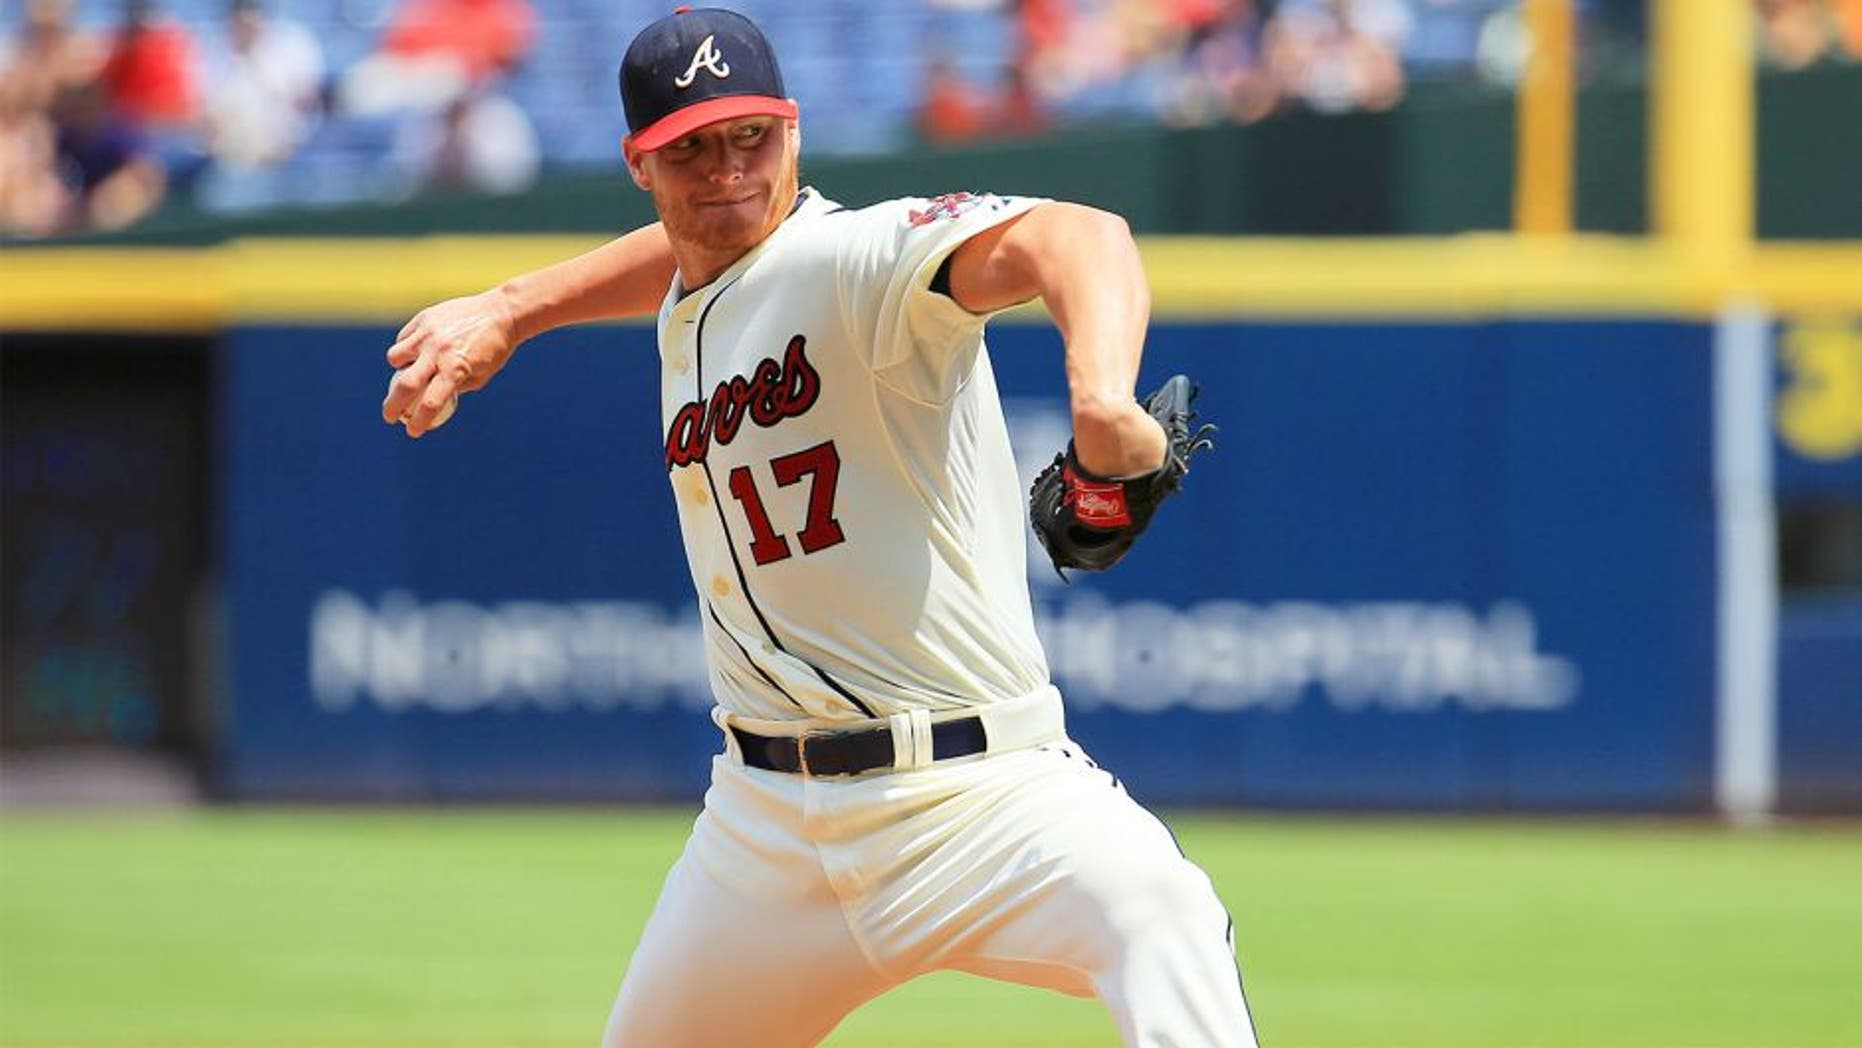 ATLANTA, GA - AUGUST 16: Shelby Miller #17 of the Atlanta Braves pitches in the third inning against the Arizona Diamondbacks at Turner Field on August 16, 2015 in Atlanta, Georgia. (Photo by Daniel Shirey/Getty Images)